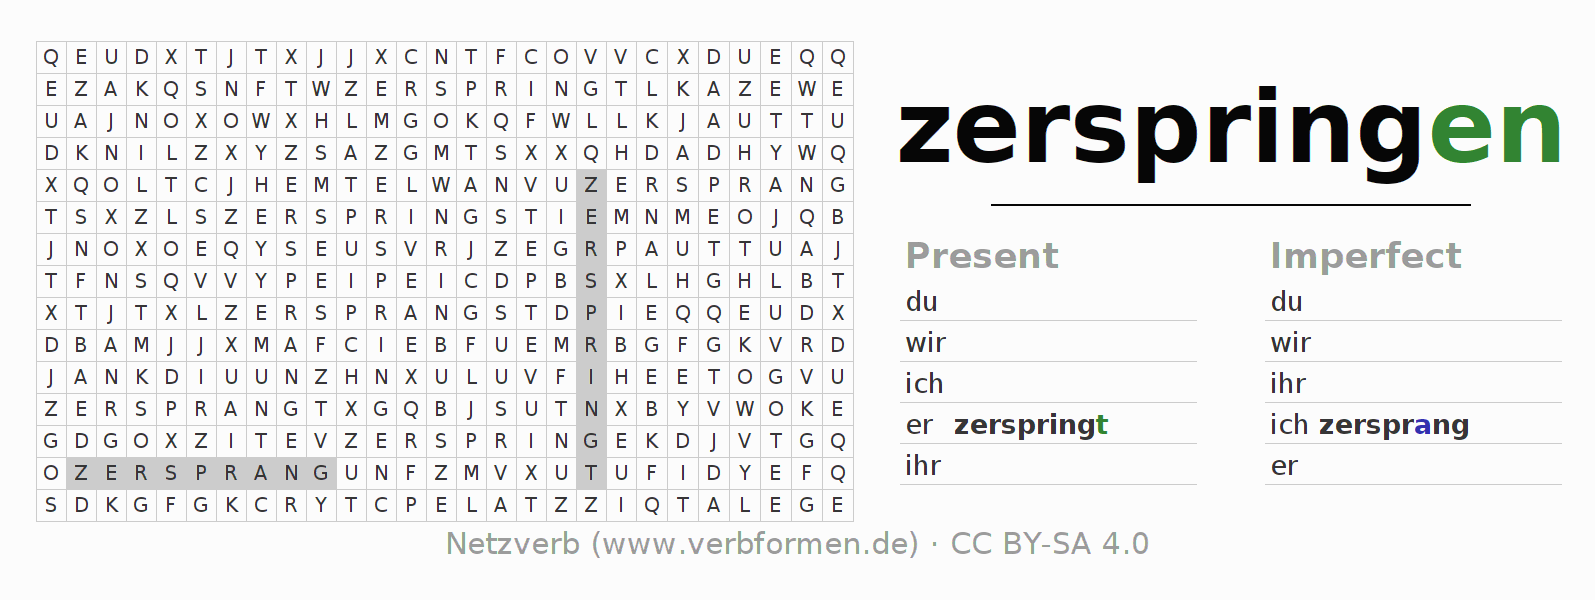 Word search puzzle for the conjugation of the verb zerspringen